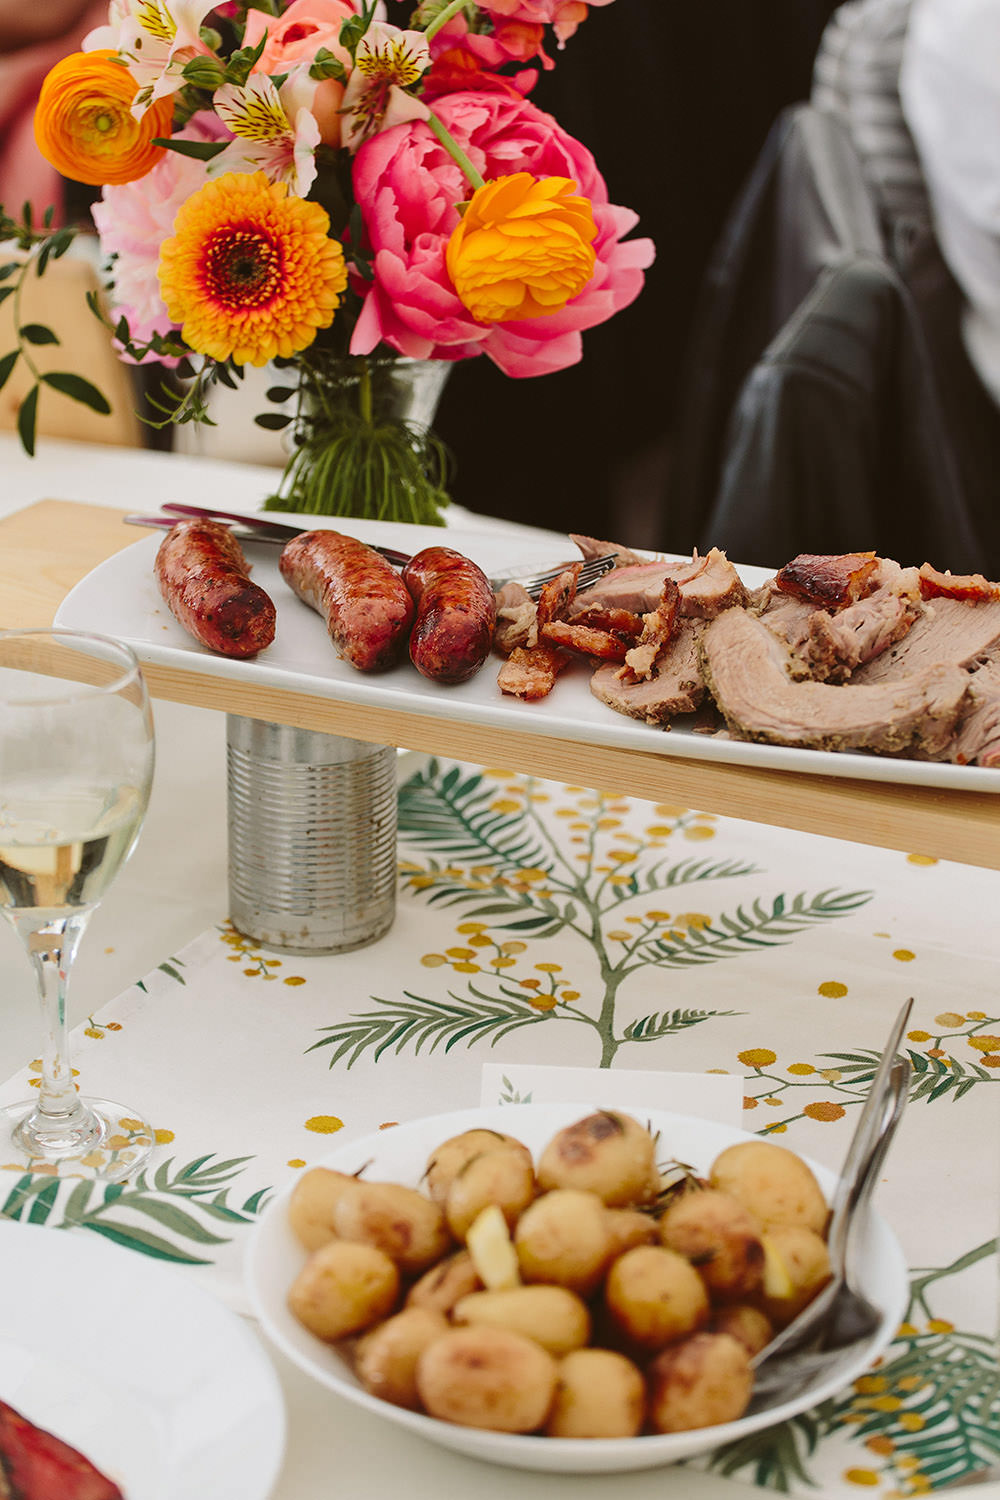 Sharing Food Platter Grazing Table Glynde Place Wedding Sarah London Photography